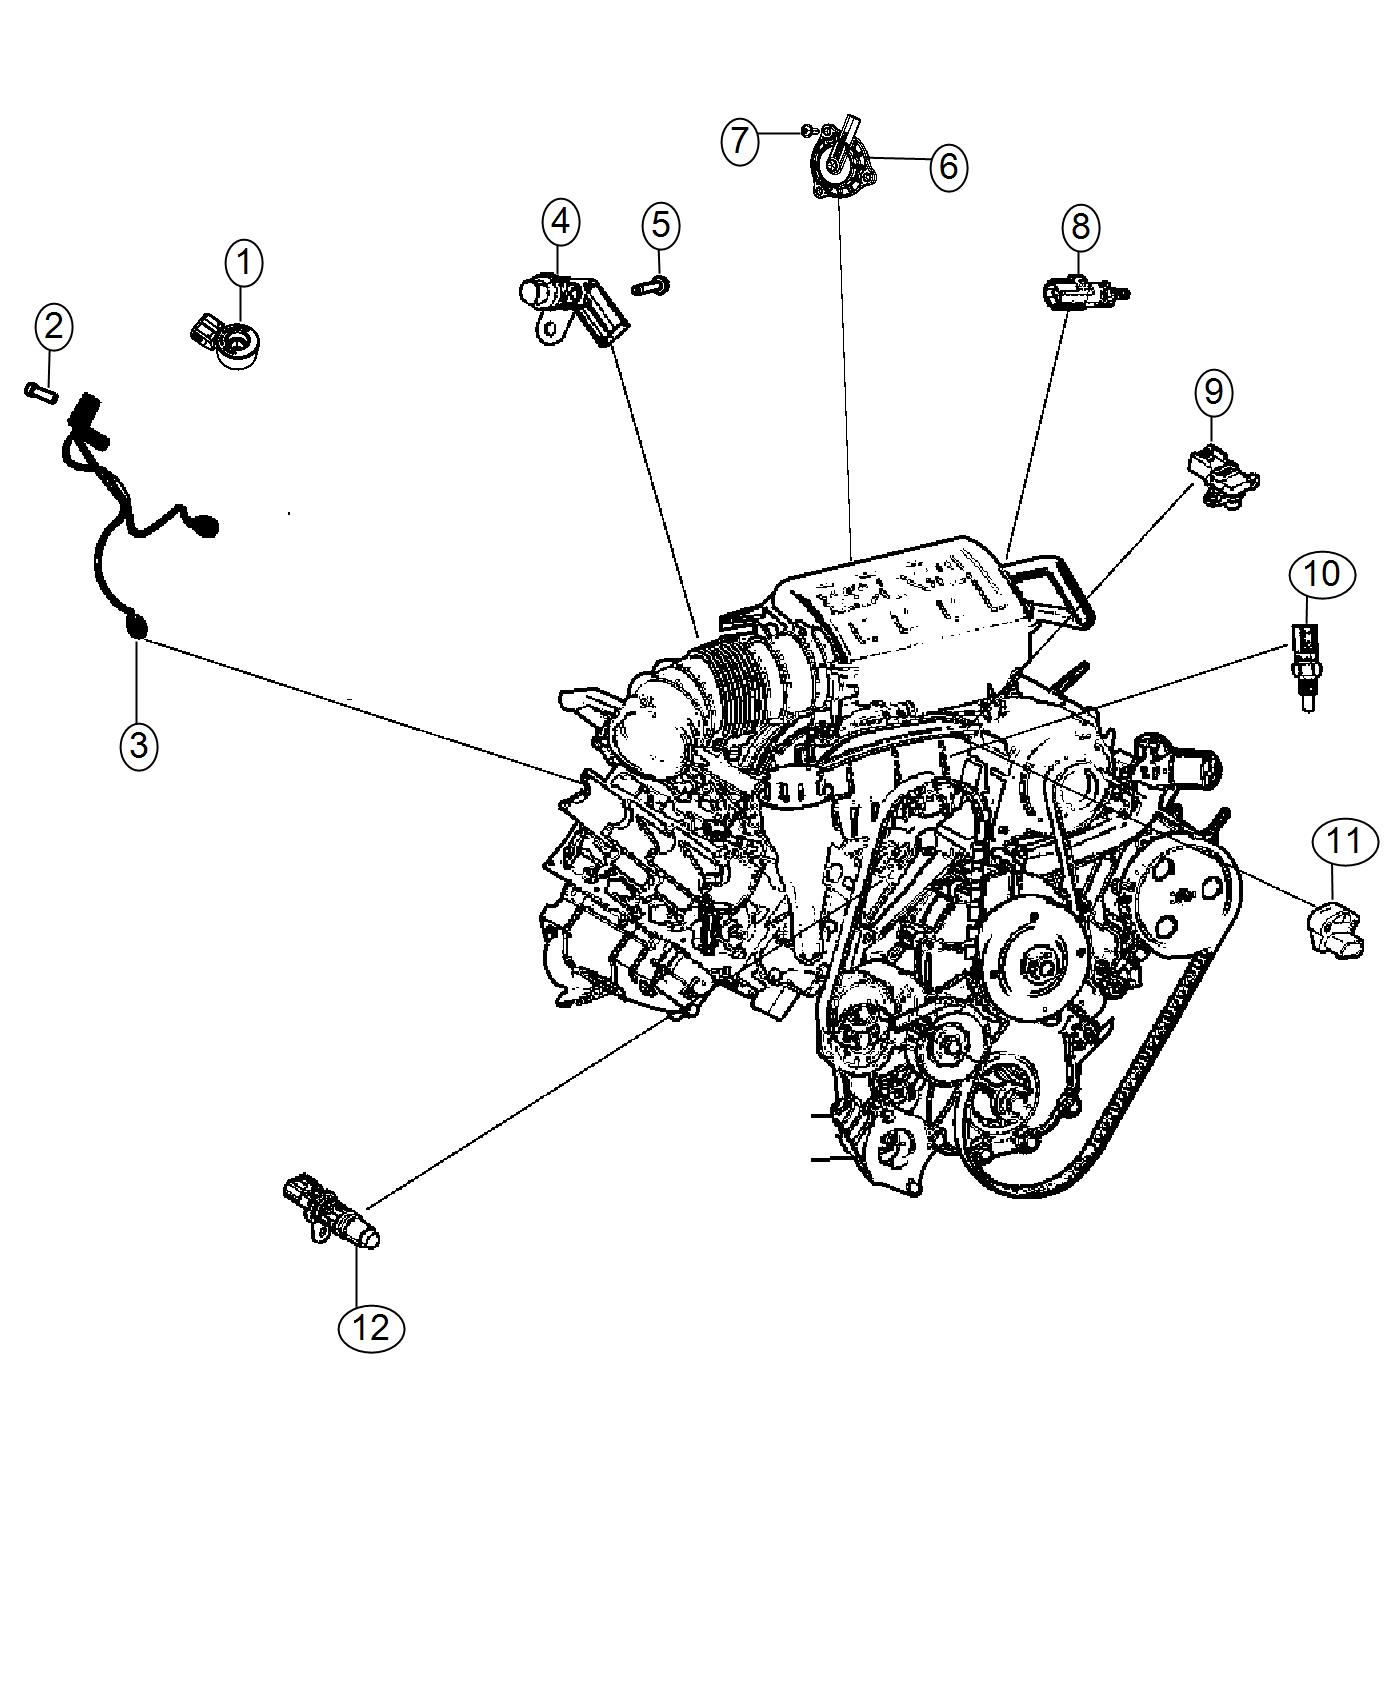 2017 Jeep Wrangler Wiring. Used for: knock, oil pressure